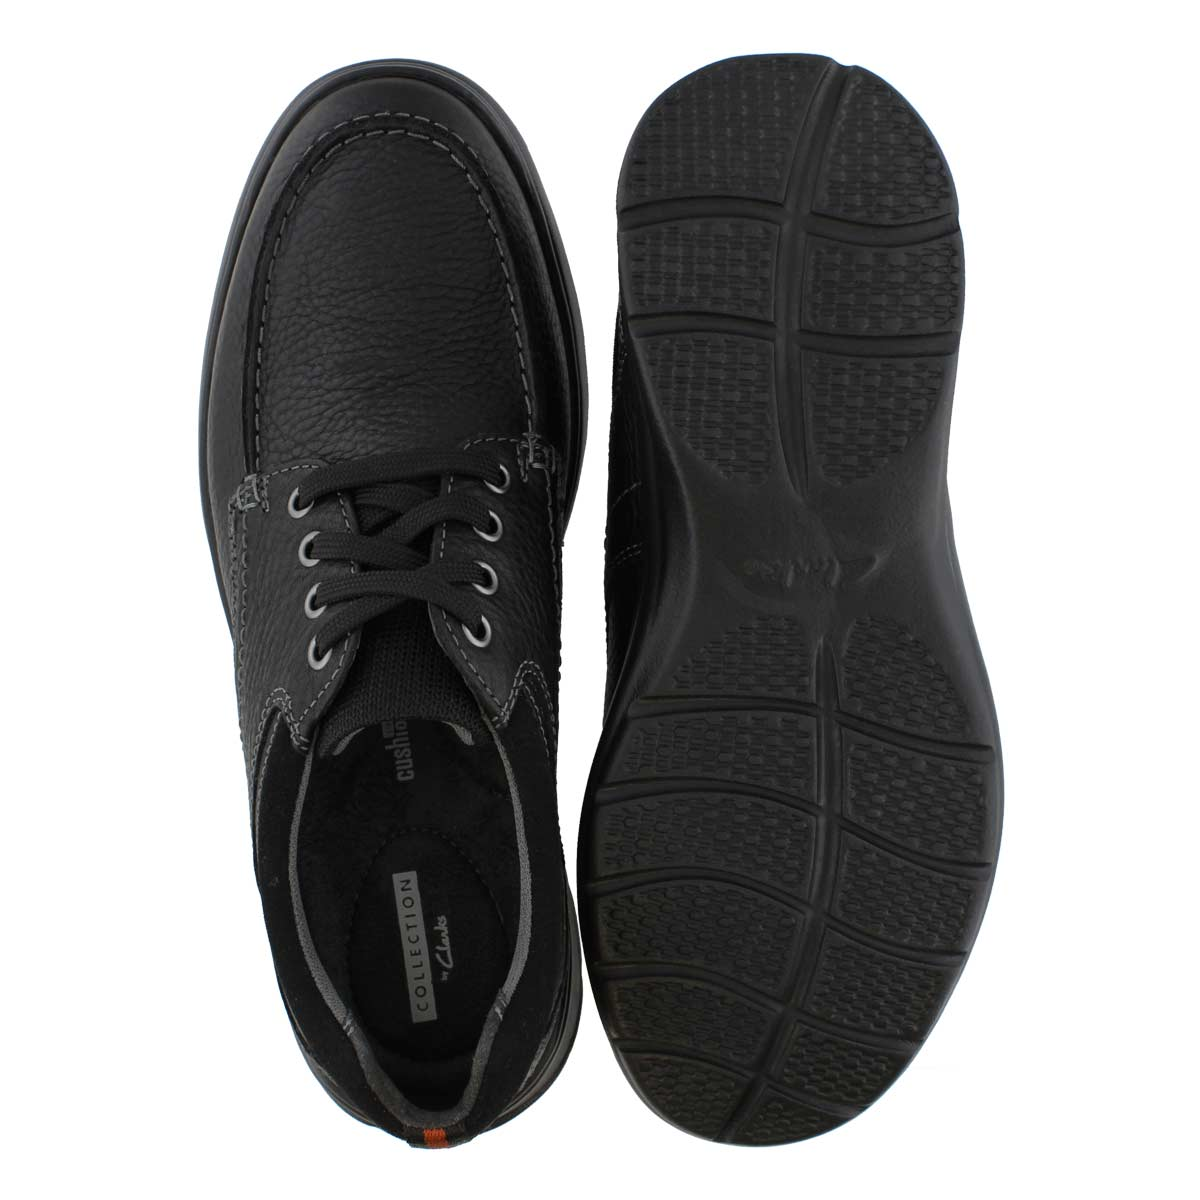 Mns Cotrell Edge black lace up shoe